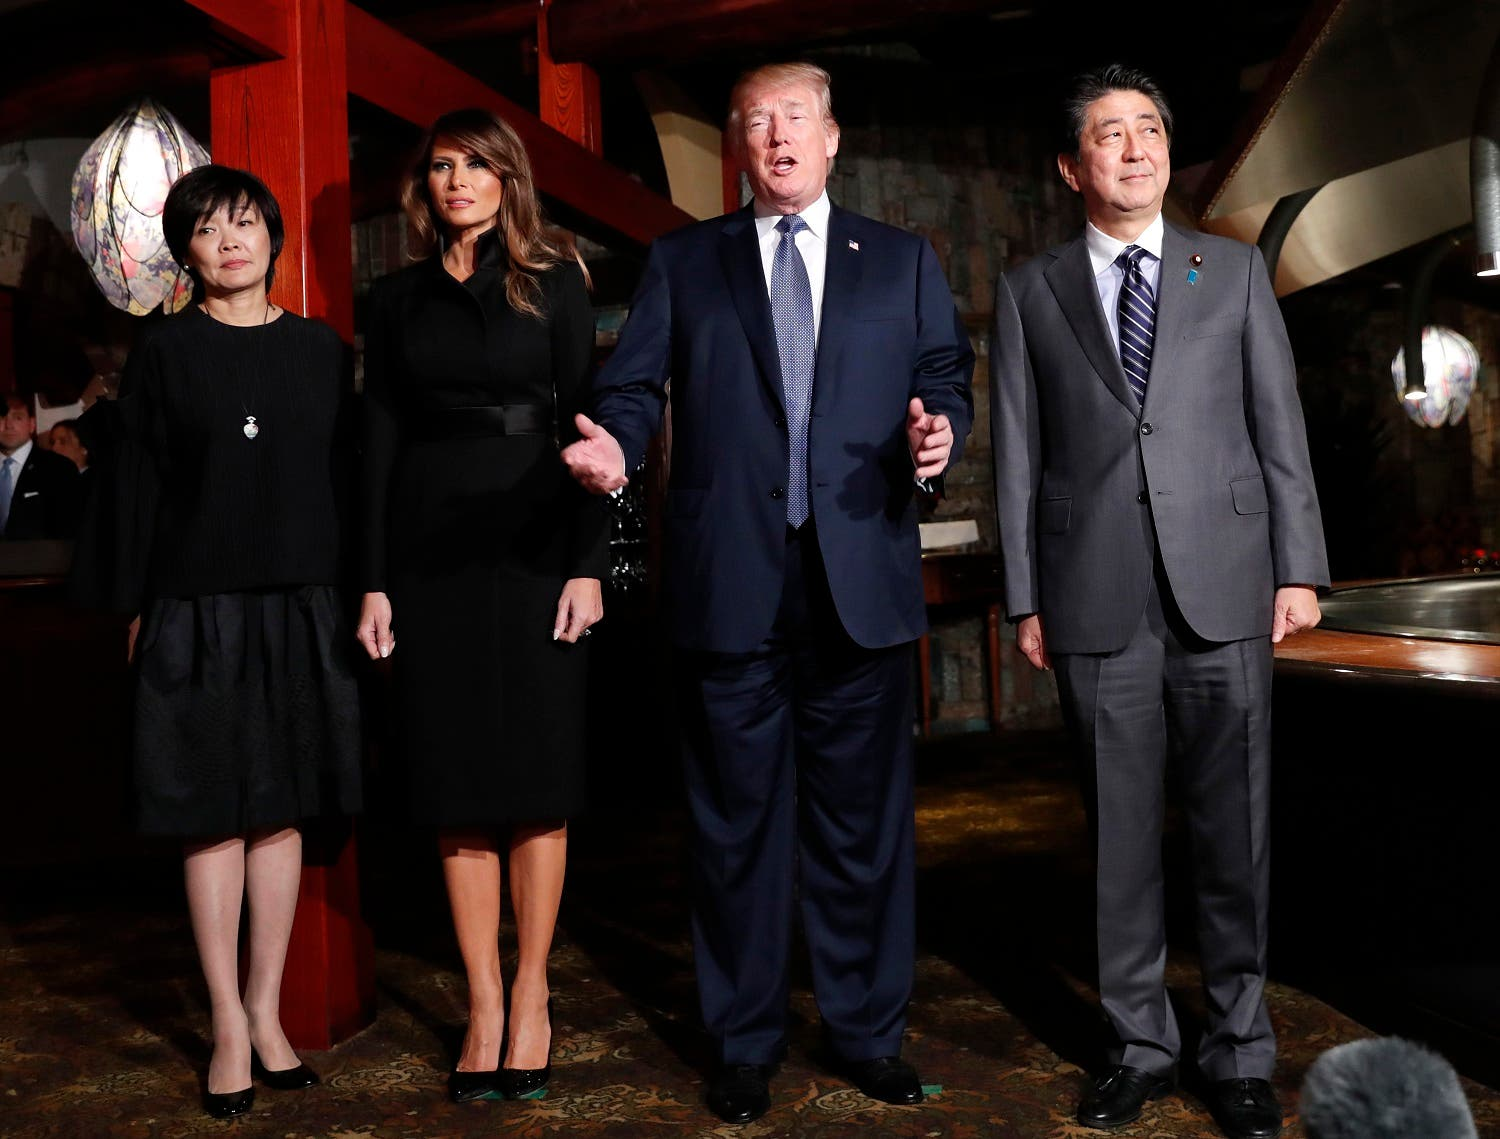 President Donald Trump, accompanied by first lady Melania Trump, , Japanese Prime Minister Shinzo Abe and his wife Akie Abe, speaks to members of the media before having a dinner at Ginza Ukai Tei restaurant, on Nov. 5, 2017, in Tokyo. (AP)